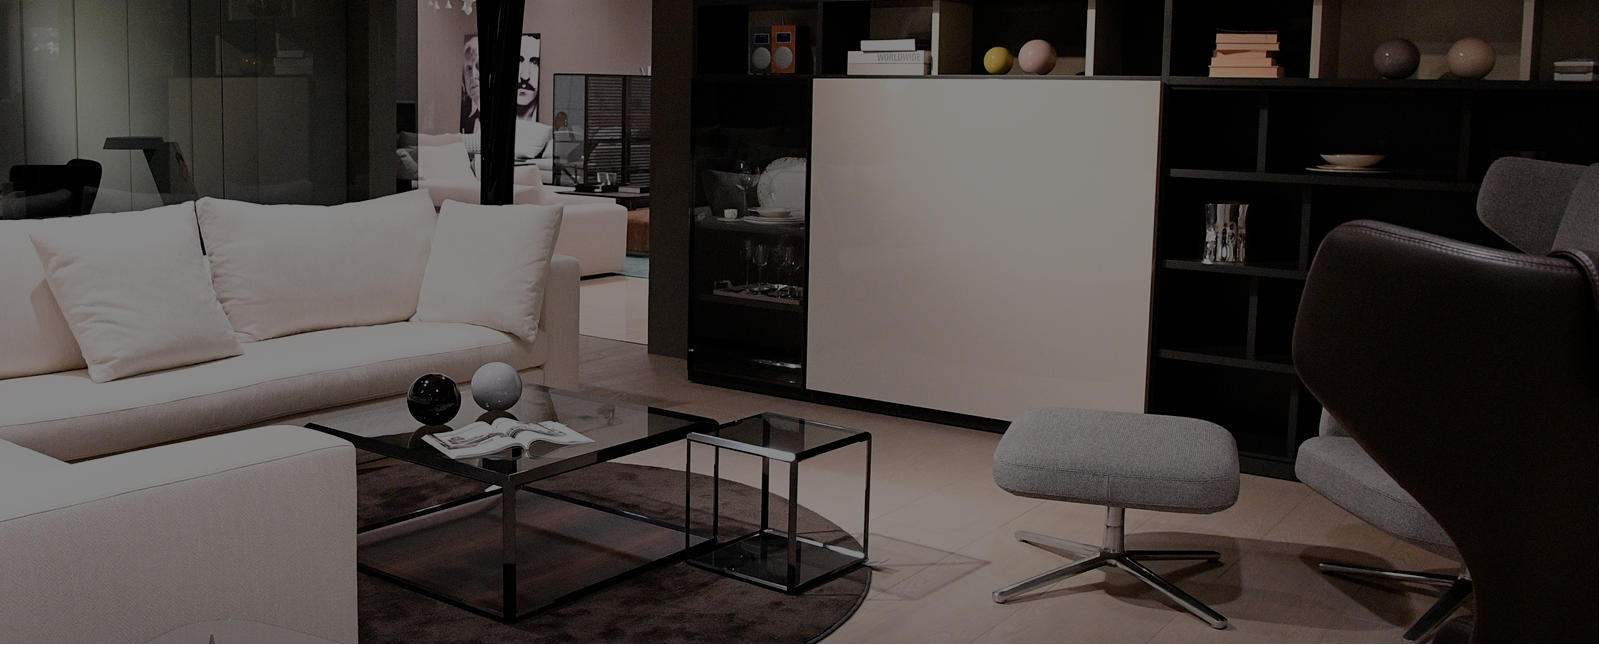 bruno interni showroom di arredamento e design a catania